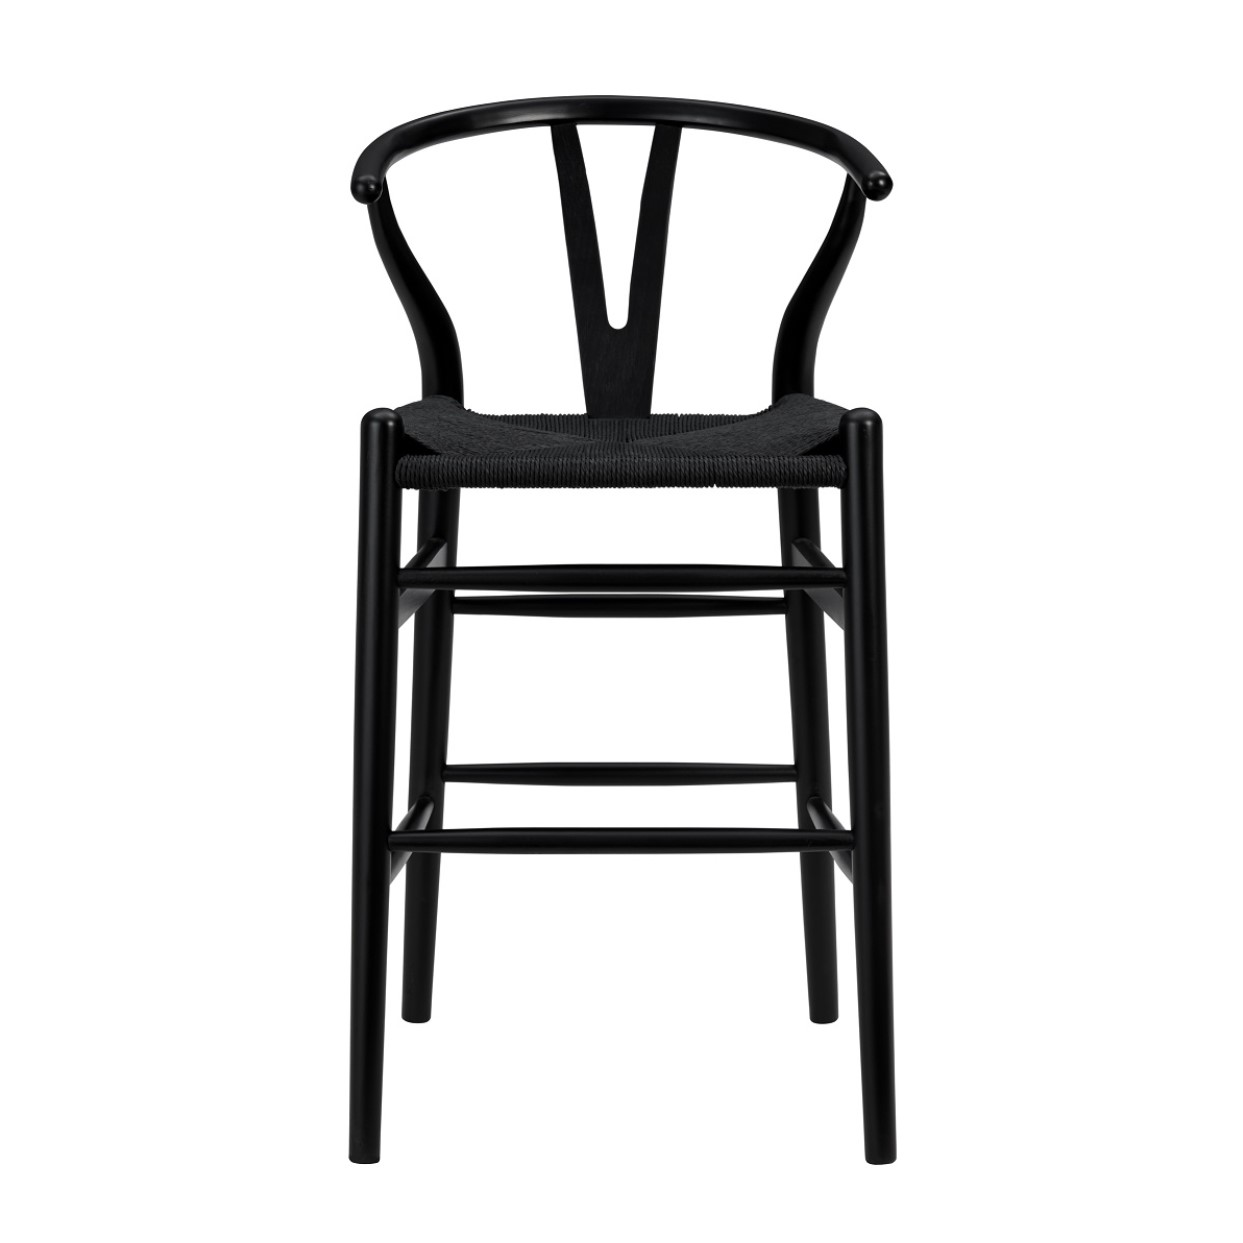 """20.08"""" X 20.87"""" X 38.19"""" Black Solid Beech Wood Counter Stool with Black Rush Seat"""